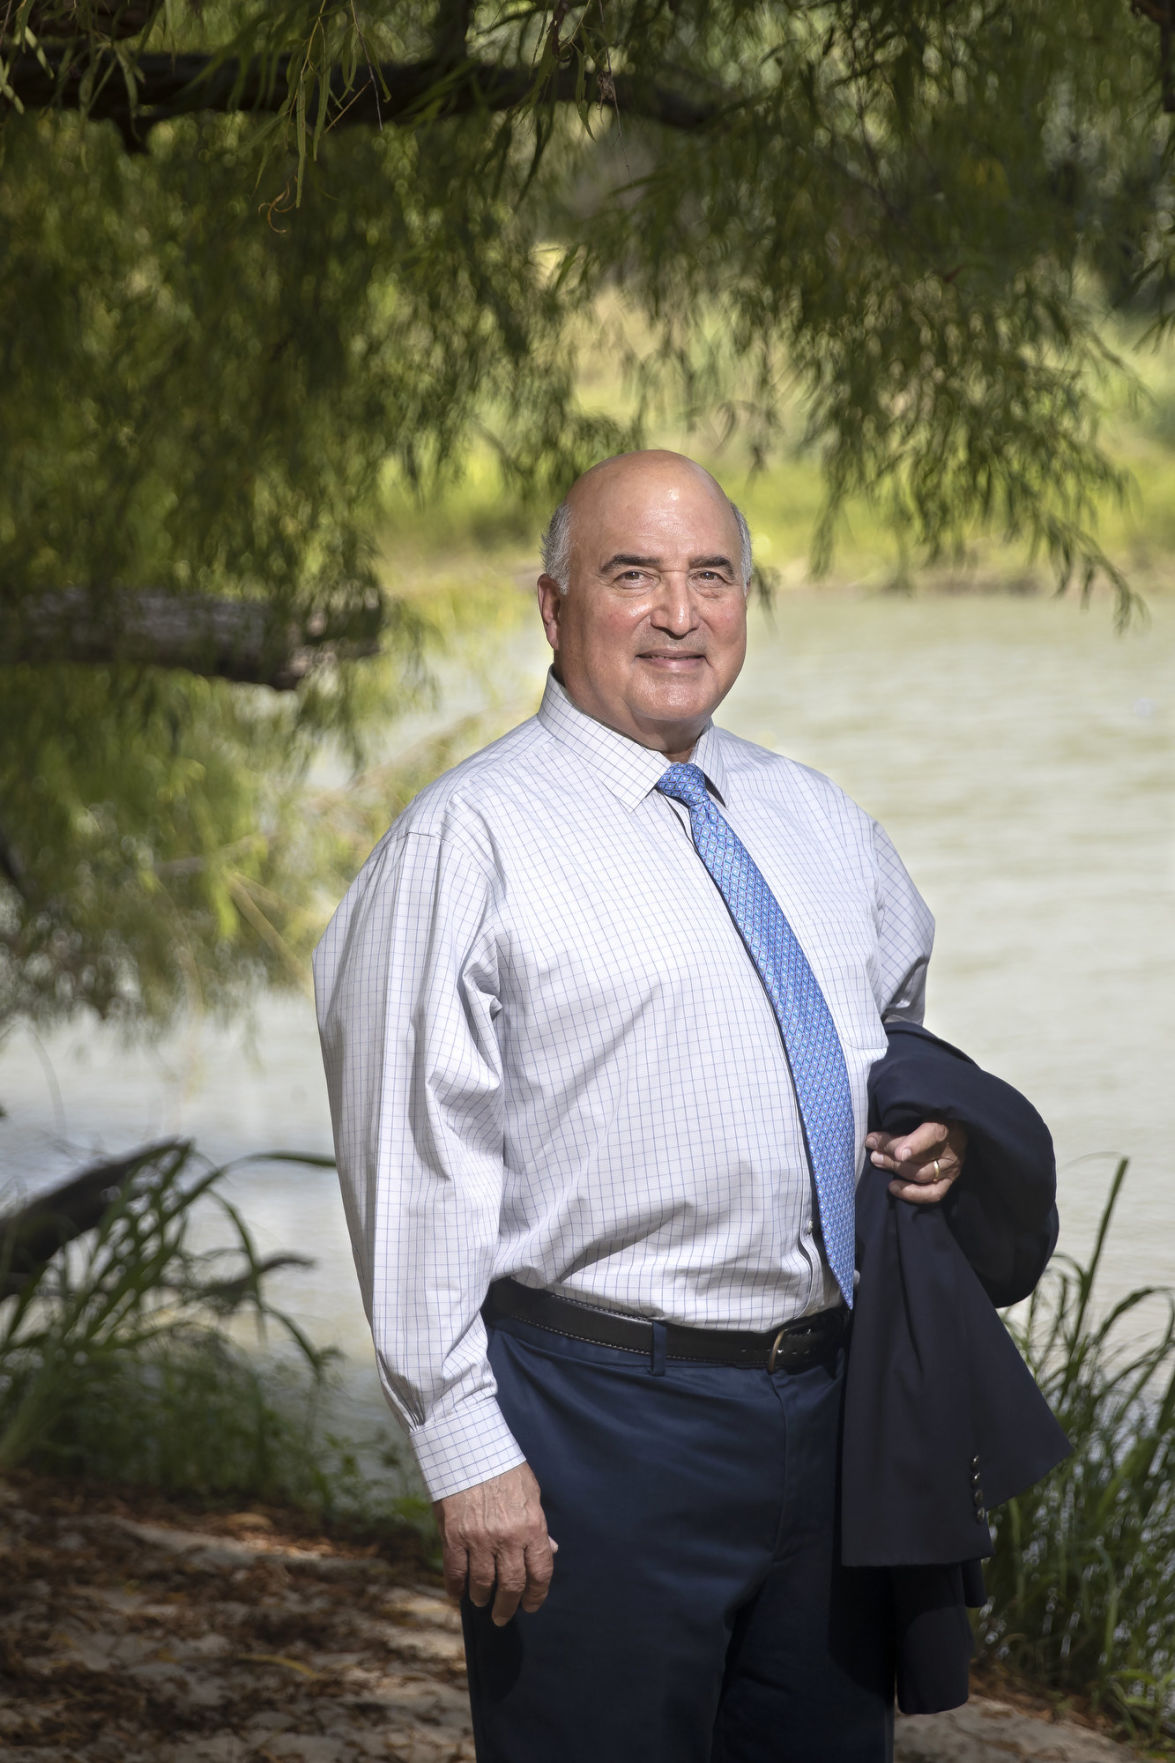 Garza retires after 18 years as Victoria's spokesman